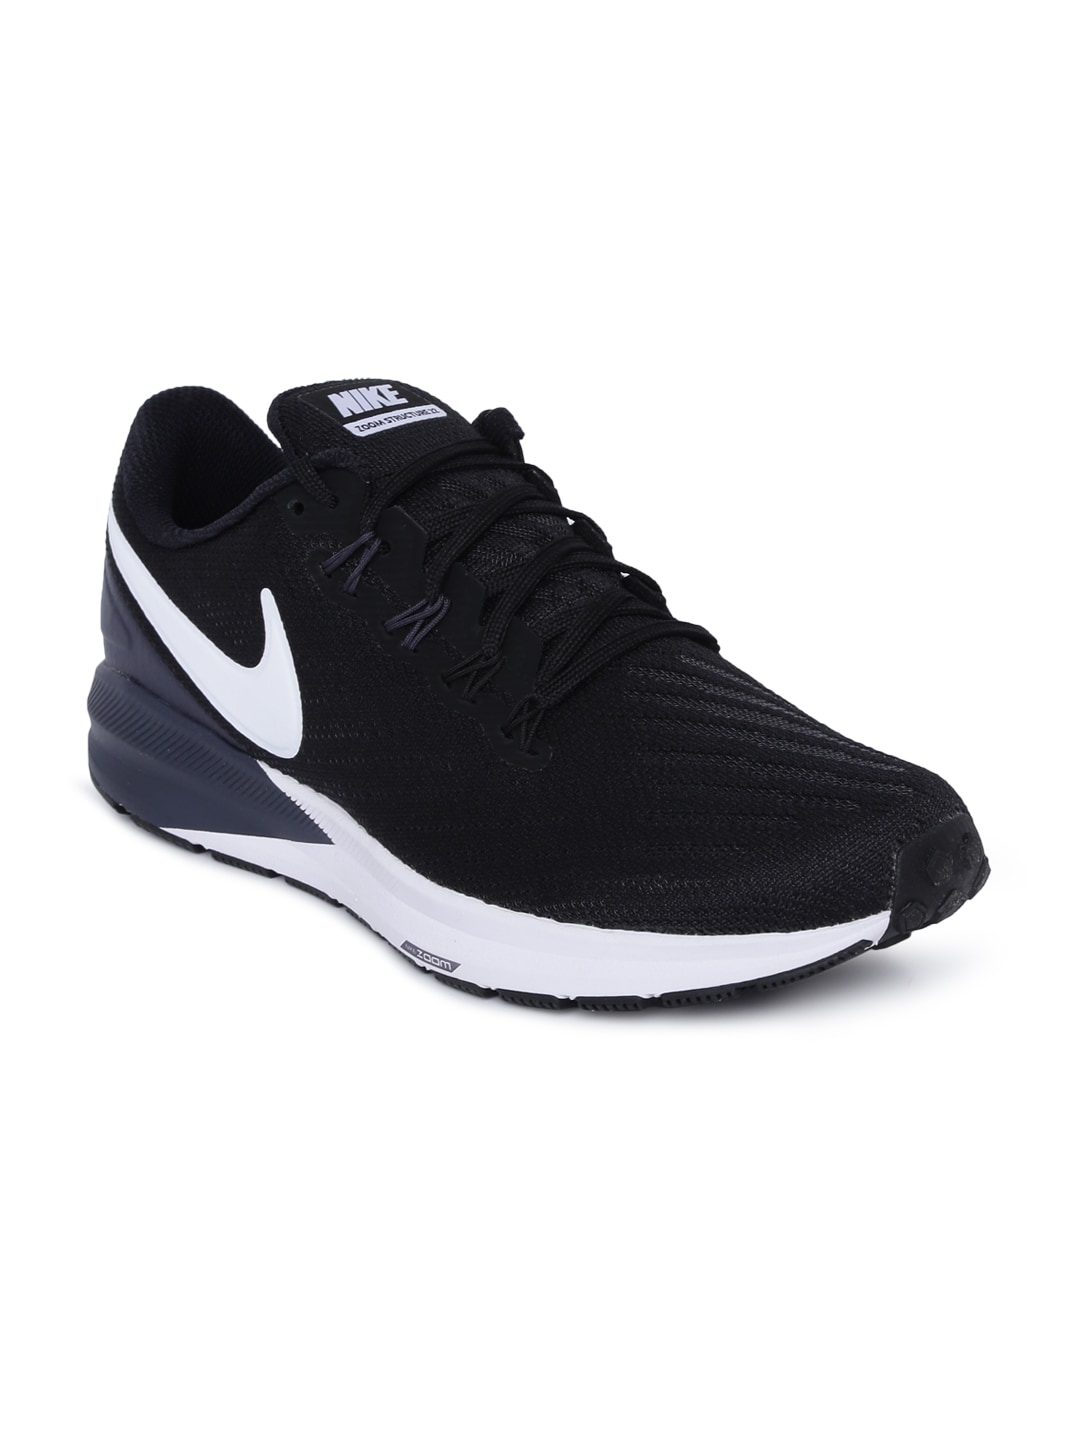 ee09771aadac Nike Air Max - Buy Nike Air Max Shoes